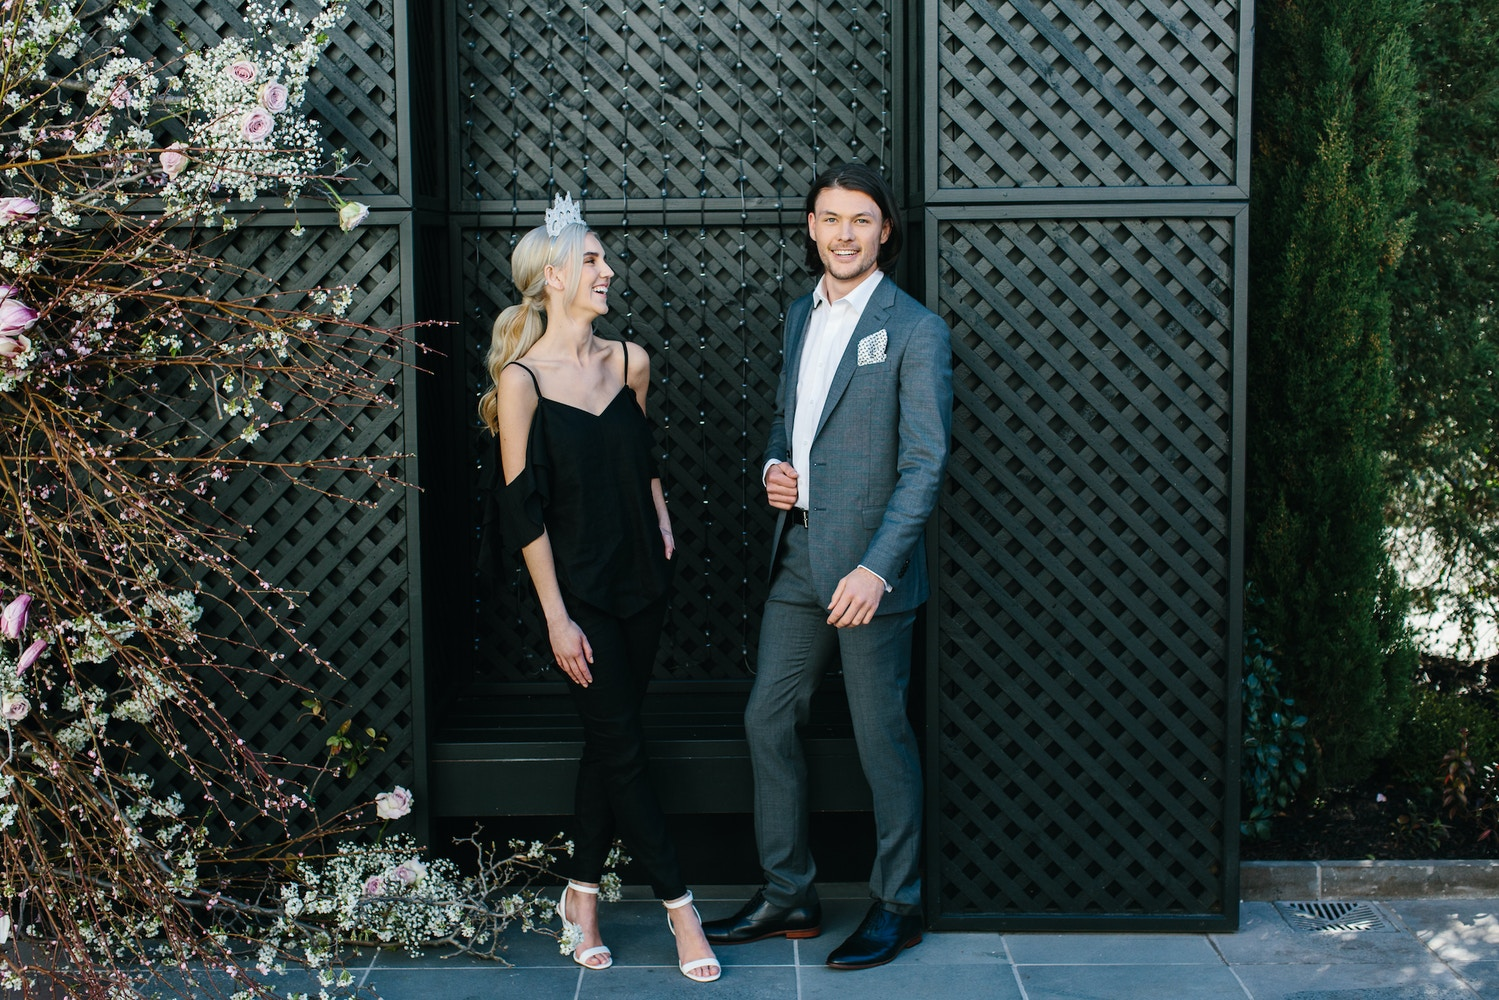 The Ultimate Guide To Planning Your Engagement Party